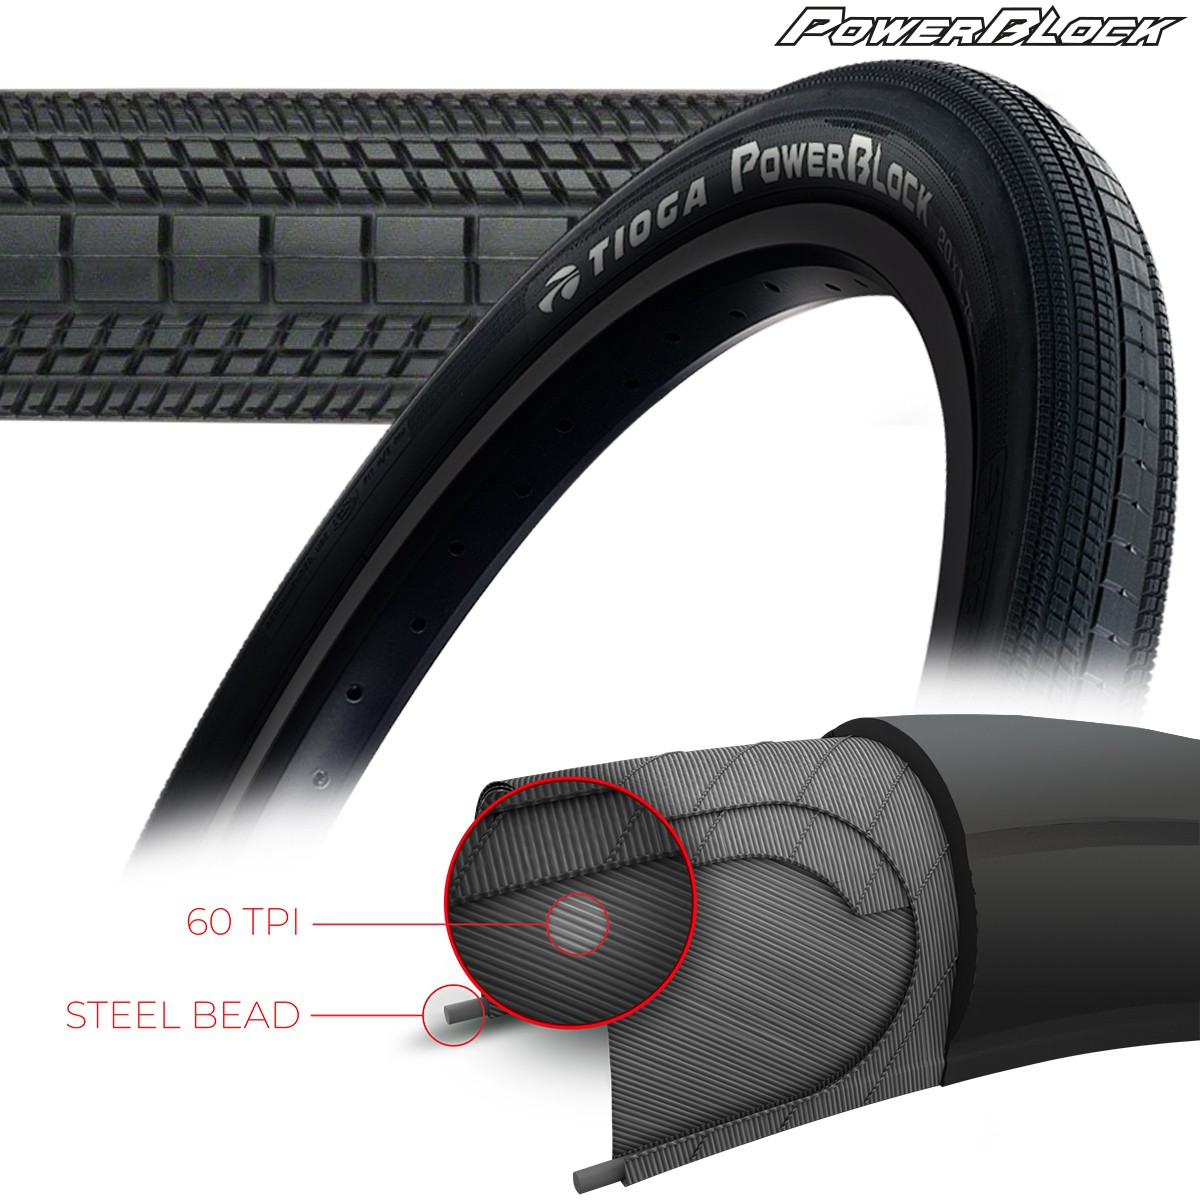 TIOGA POWERBLOCK TIRES - 60 TPI - WIRE BEAD